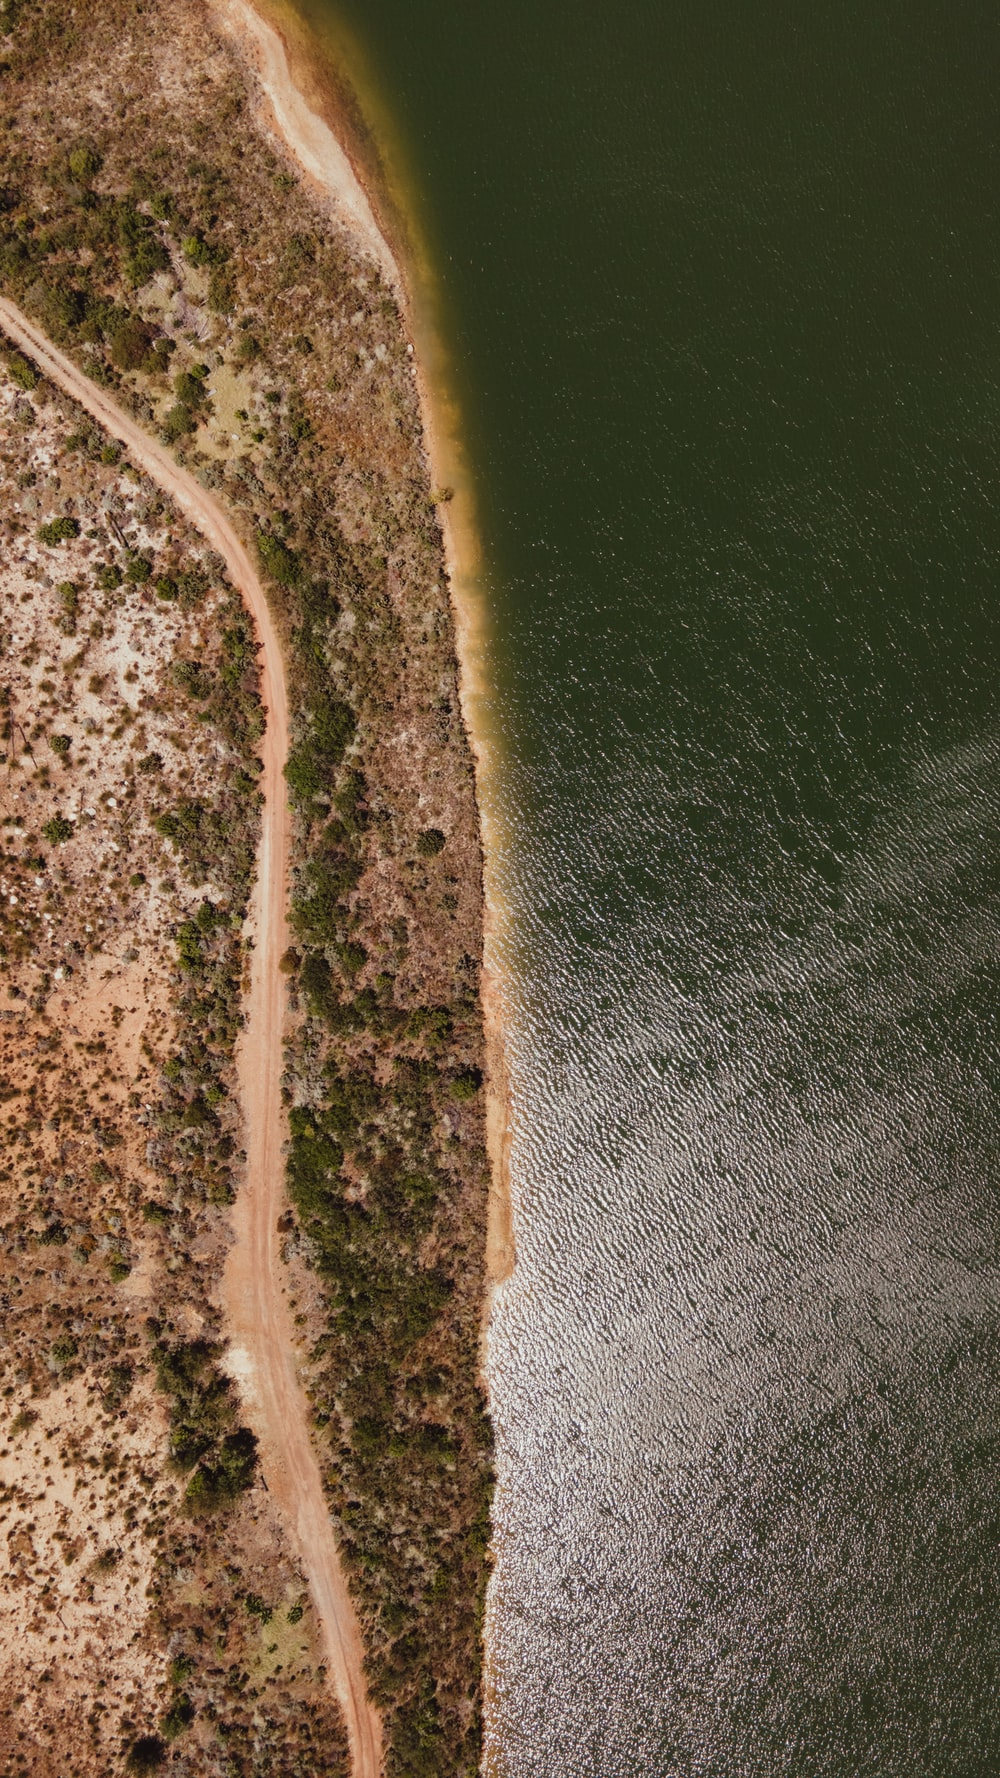 aerial view of green and brown land near body of water during daytime